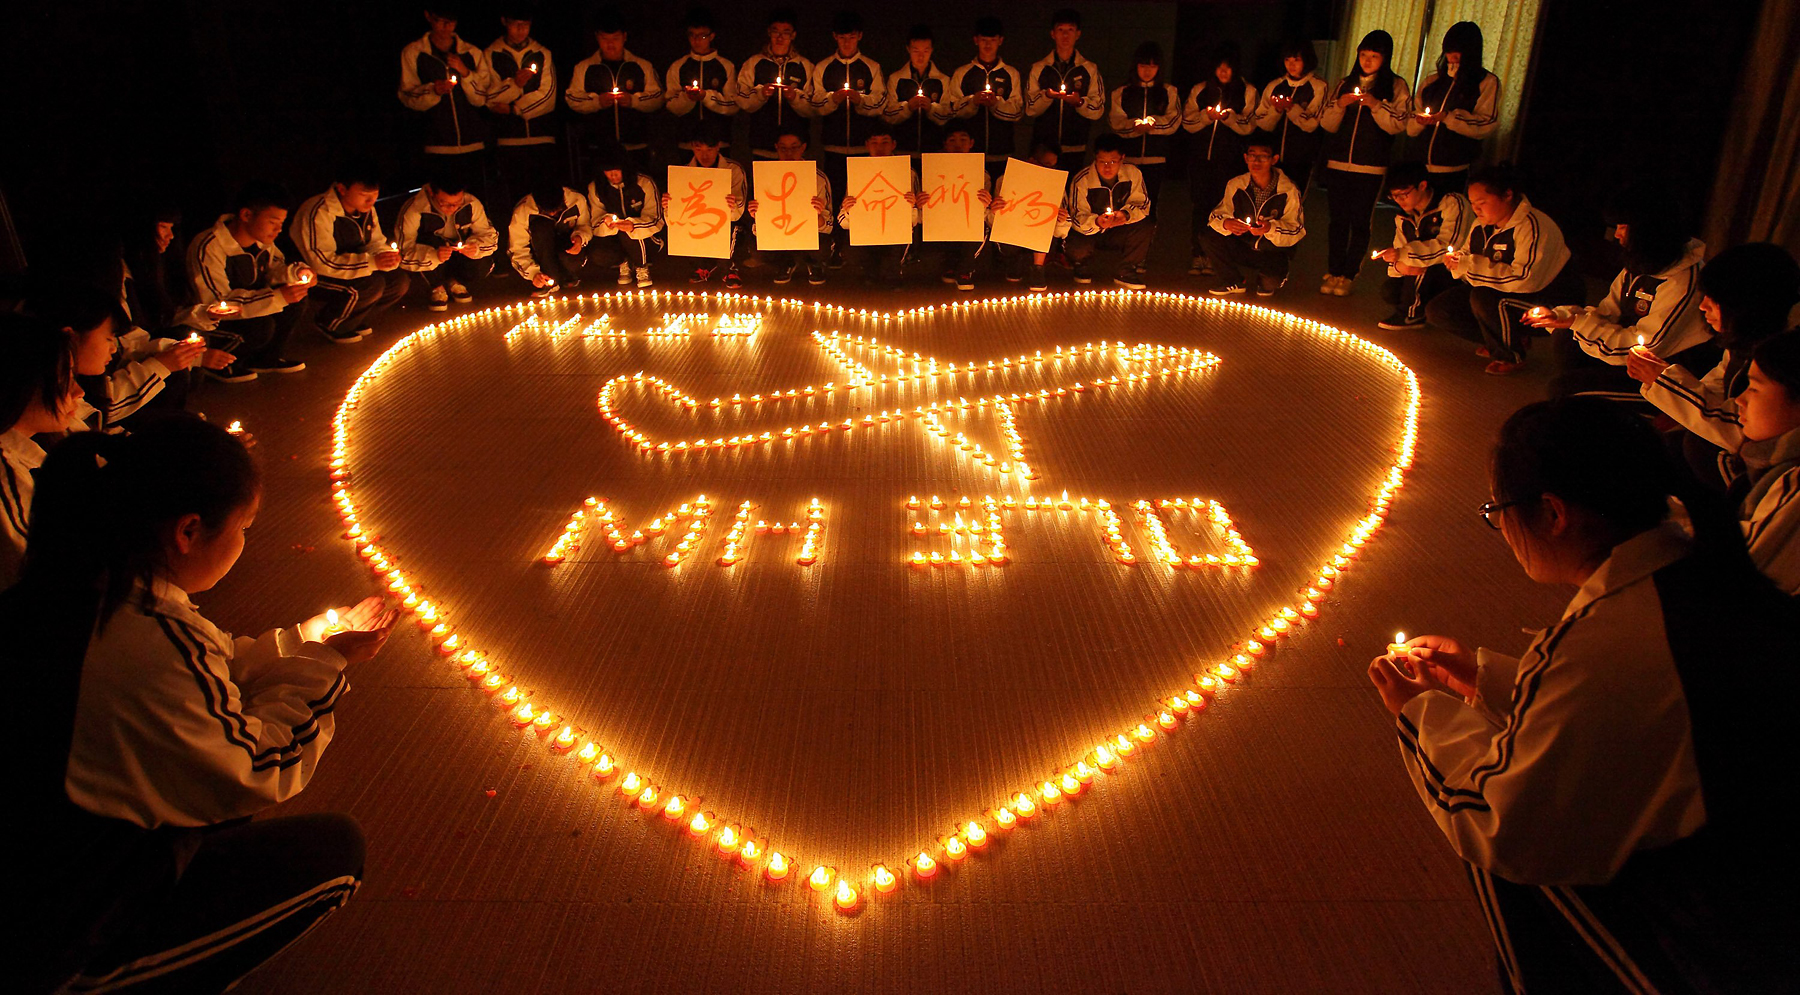 Students from an international school in the eastern Chinese city of Zhuji hold a candlelight vigil for the passengers on the missing Malaysia Airlines plane on March 10, 2014